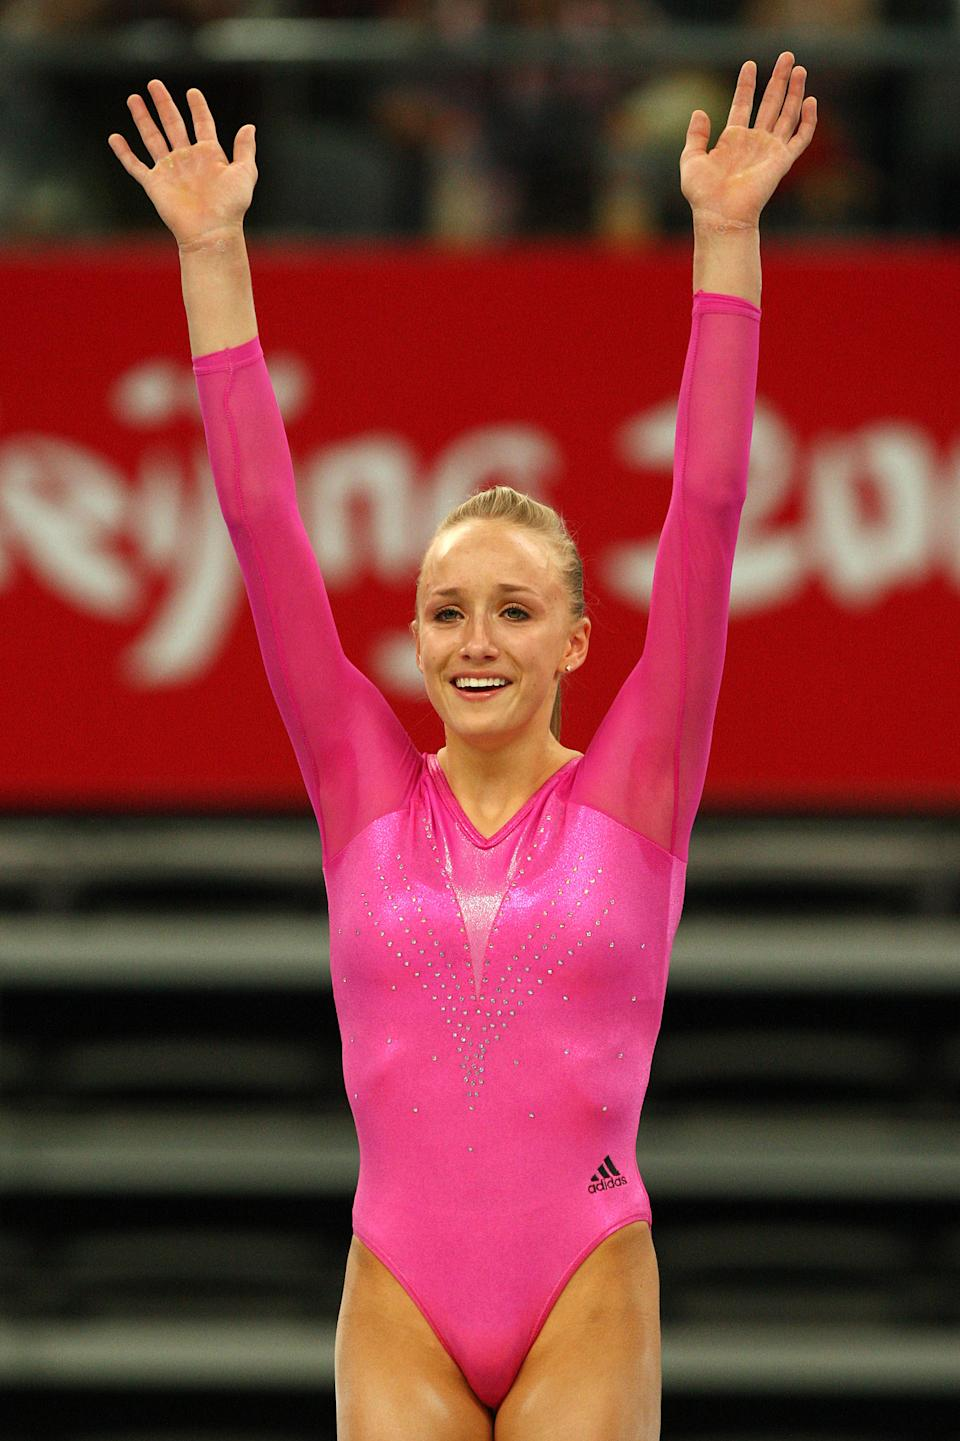 BEIJING - AUGUST 15: Nastia Liukin of the United States waves to the crowd after winning the gold medal in the women's individual all-around artistic gymnastics final at the National Indoor Stadium on Day 7 of the Beijing 2008 Olympic Games on August 15, 2008 in Beijing, China. (Photo by Quinn Rooney/Getty Images)